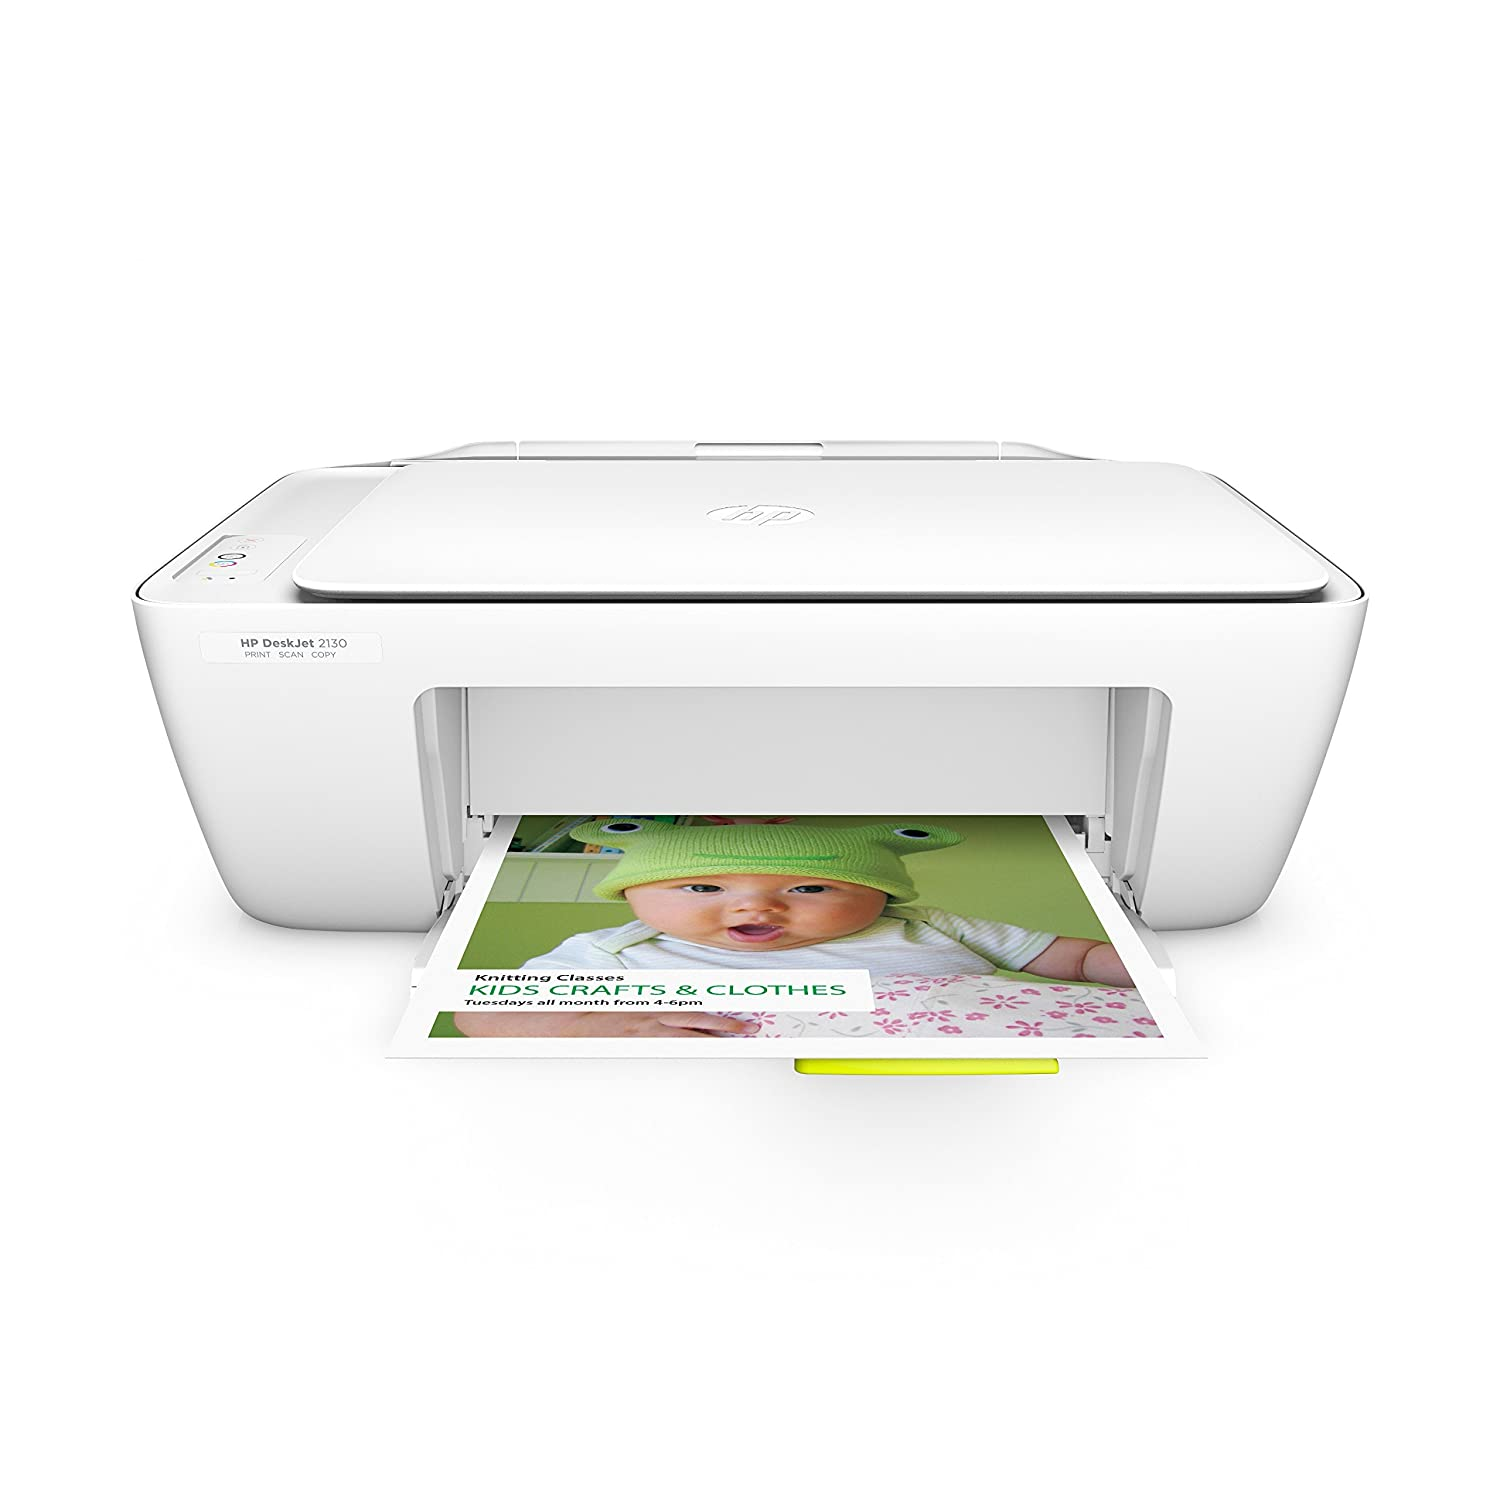 HP Deskjet 2130 Multifunctional Printer: Amazon.co.uk: Computers &  Accessories